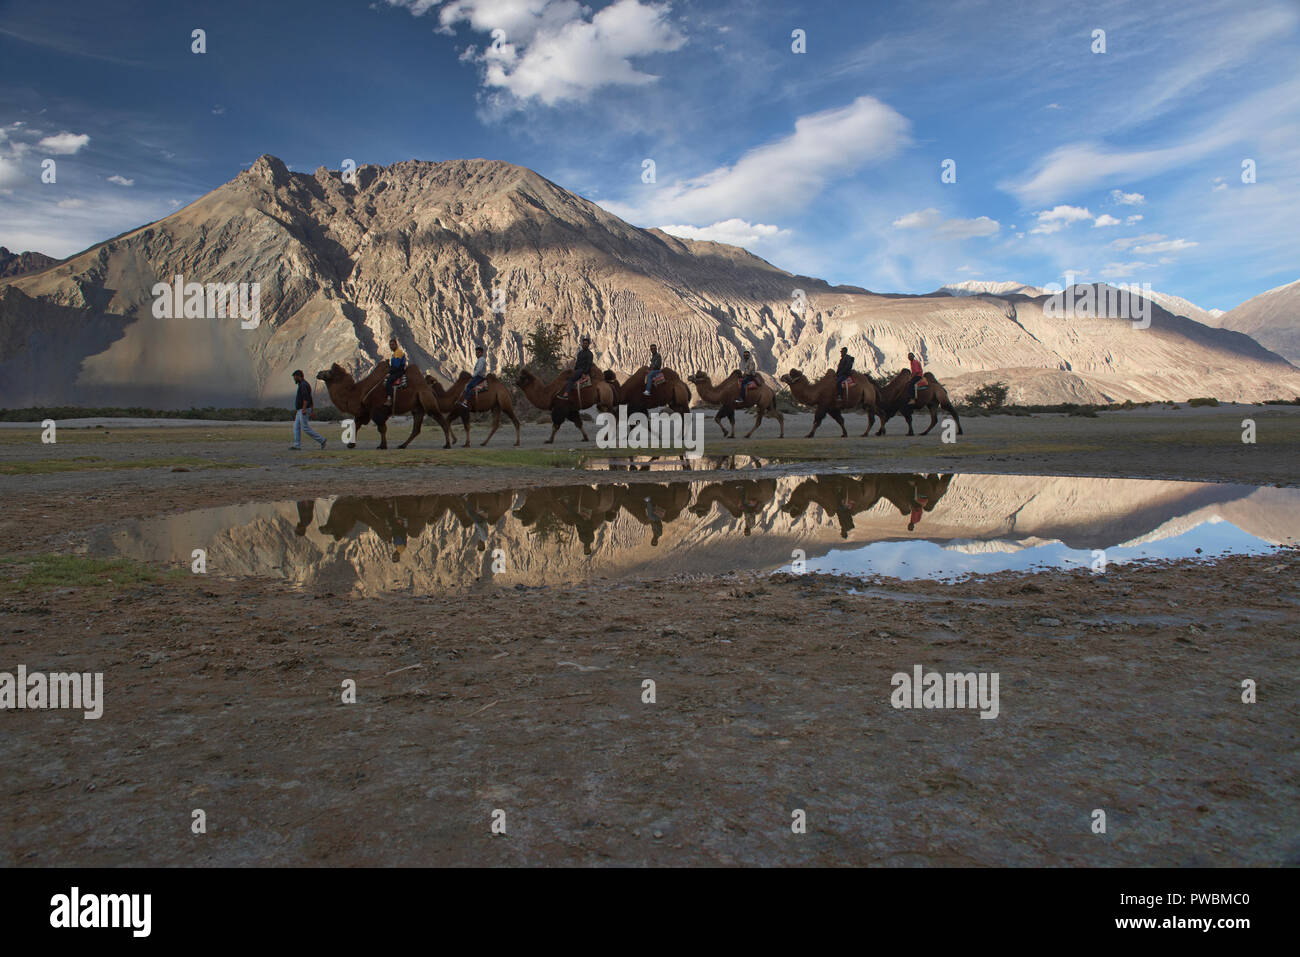 Bactrian camels in the Karakoram Mountains, Hundar, Nubra Valley, Ladakh, India - Stock Image